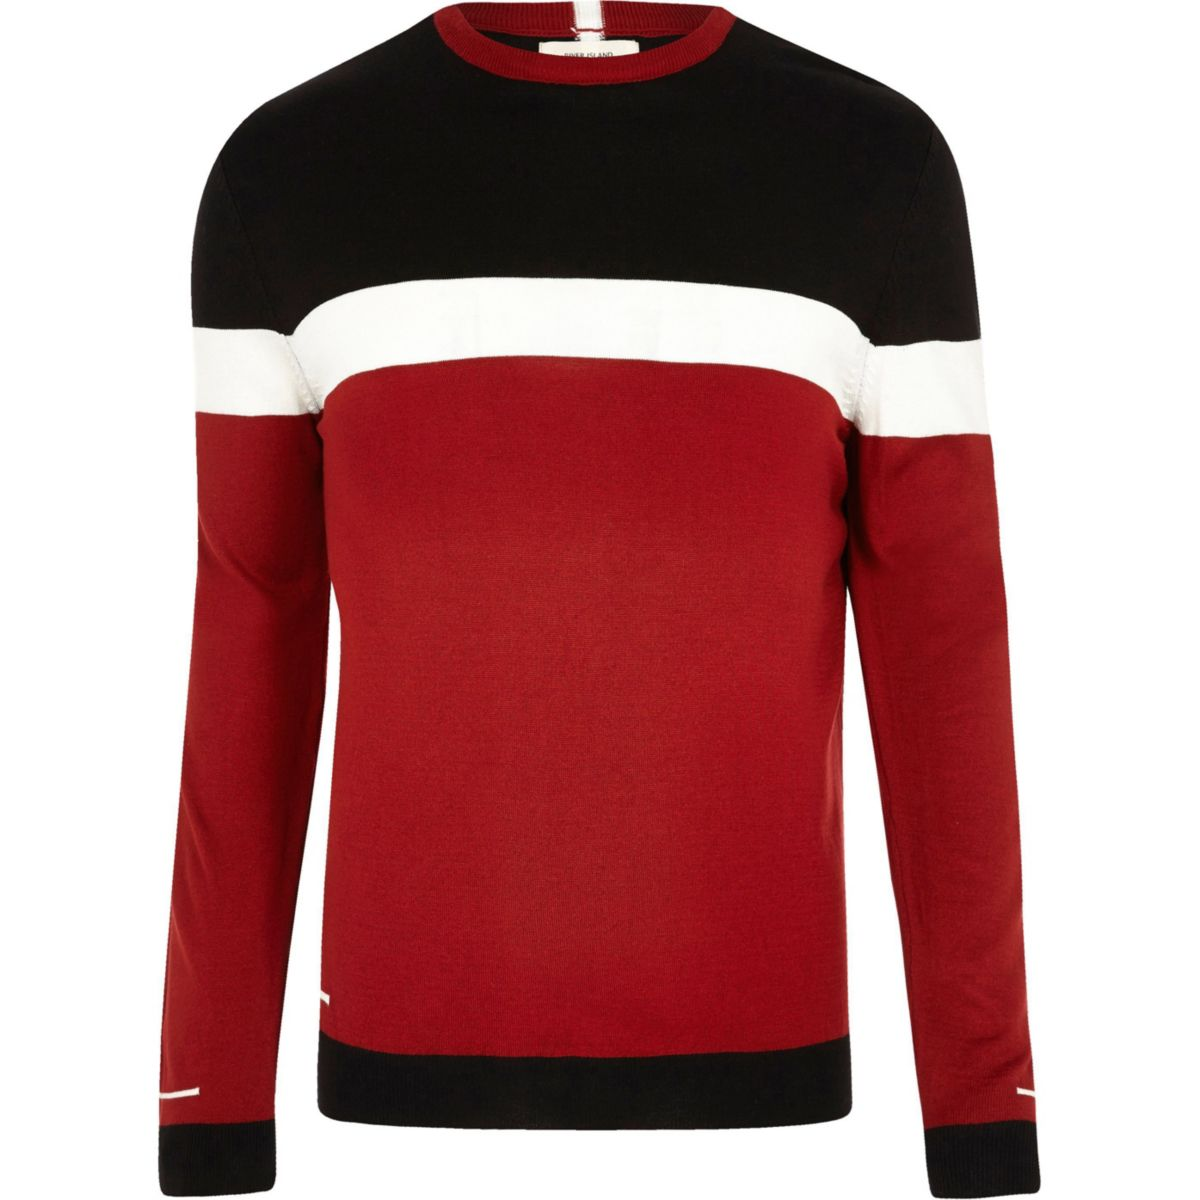 Big and Tall red color block slim fit sweater